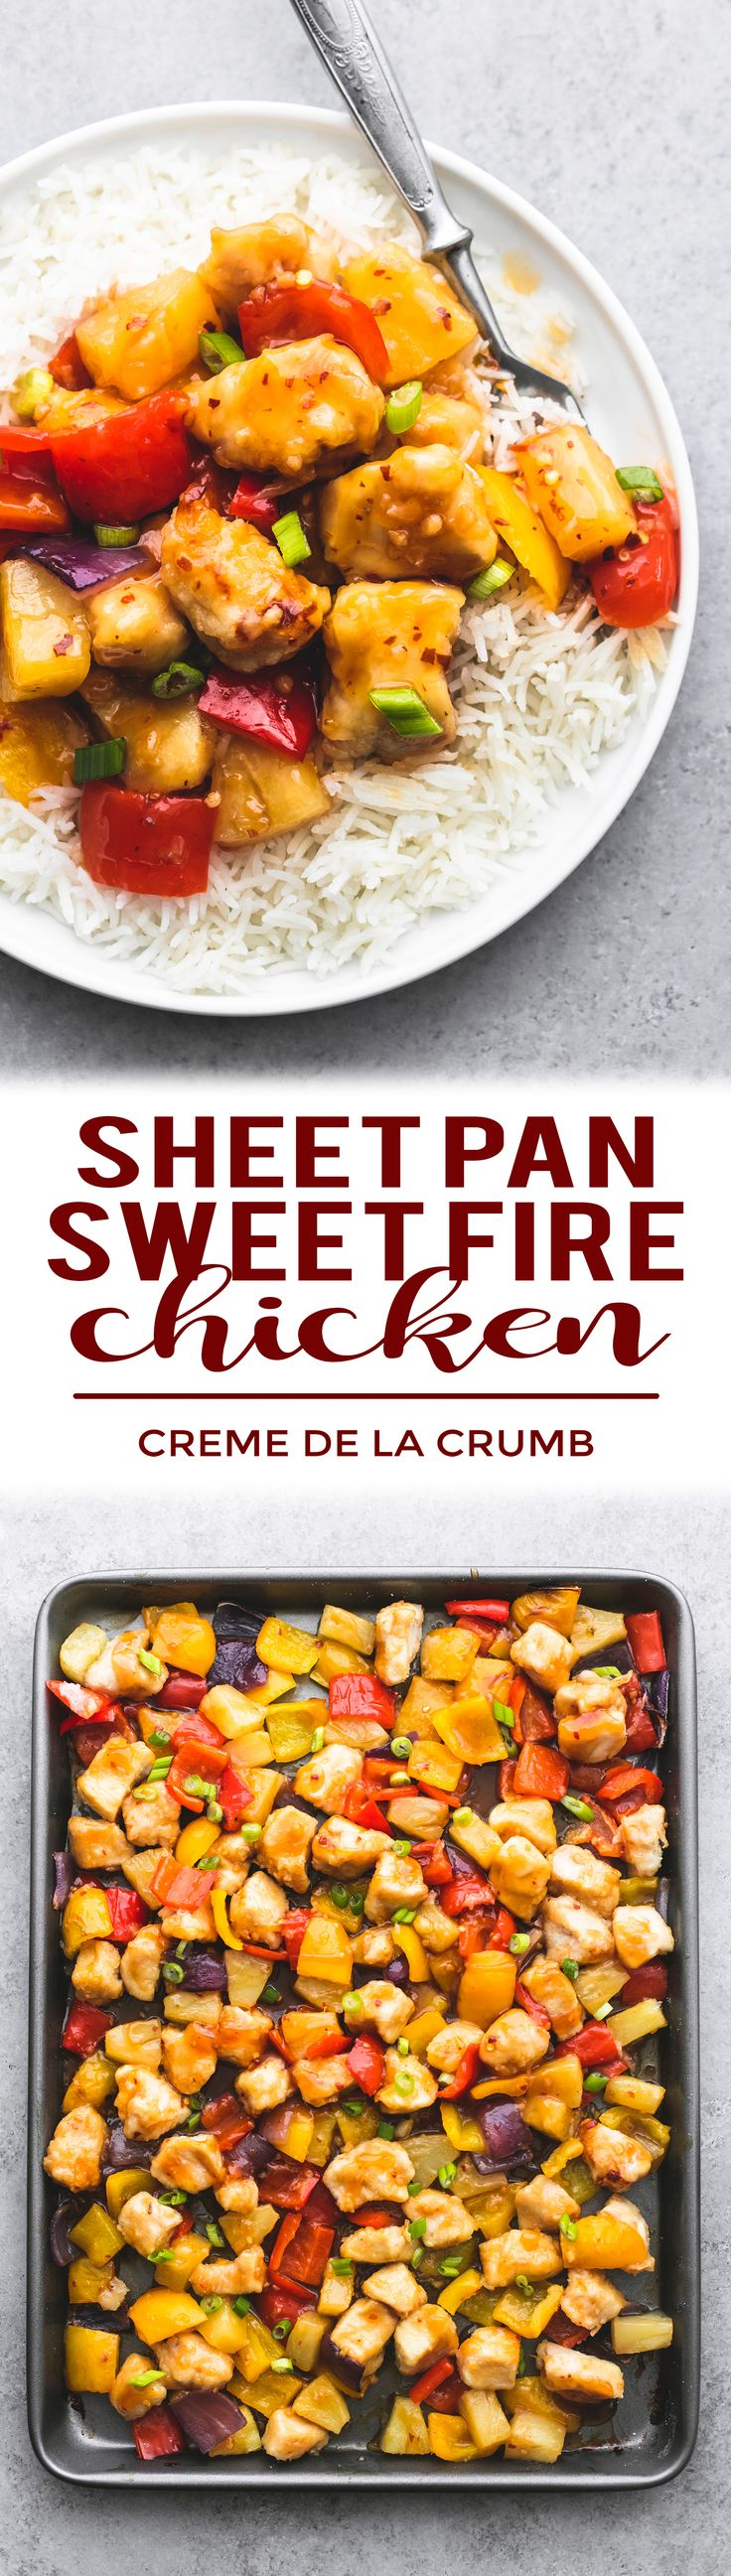 Easy and lightened-up Sheet Pan Sweet Fire Chicken is loaded with peppers, pineapple, and the best sweet and spicy Asian-inspired sauce! Skip the takeout and treat yourself to this tasty one pan dish with Kikkoman® Less Sodium Soy Sauce for a kick of flavor. #JustAddKikkoman #Sponsored